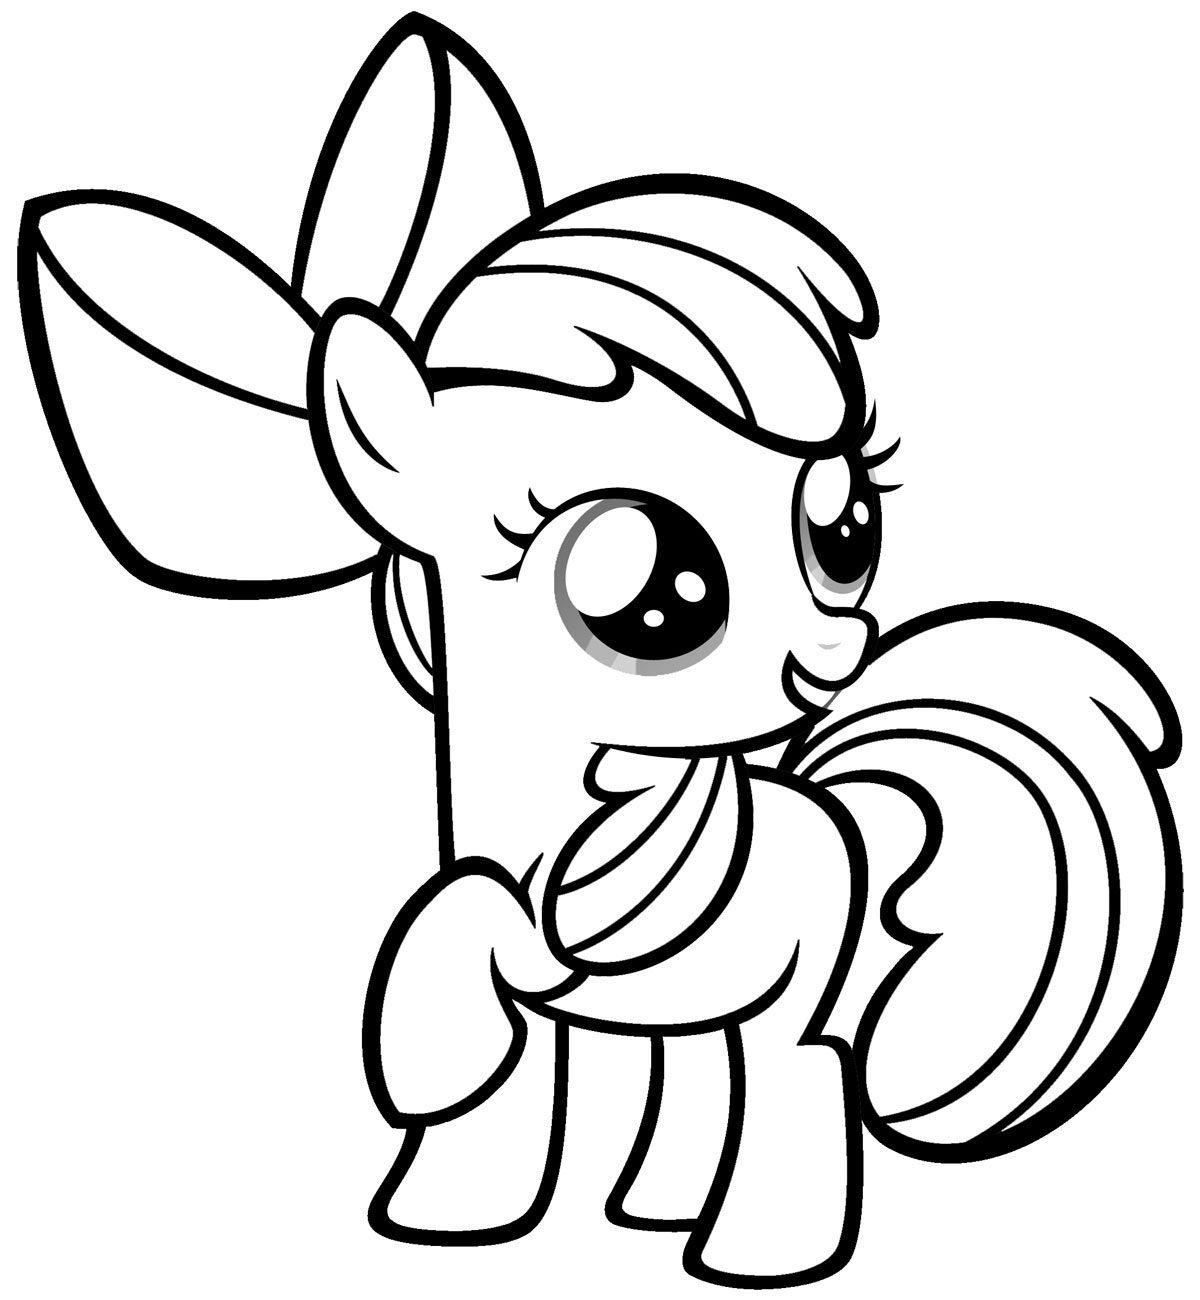 My Little Pony Ausmalbilder Celestia : 25 Little Pony Coloring Pages Images Free Coloring Pages